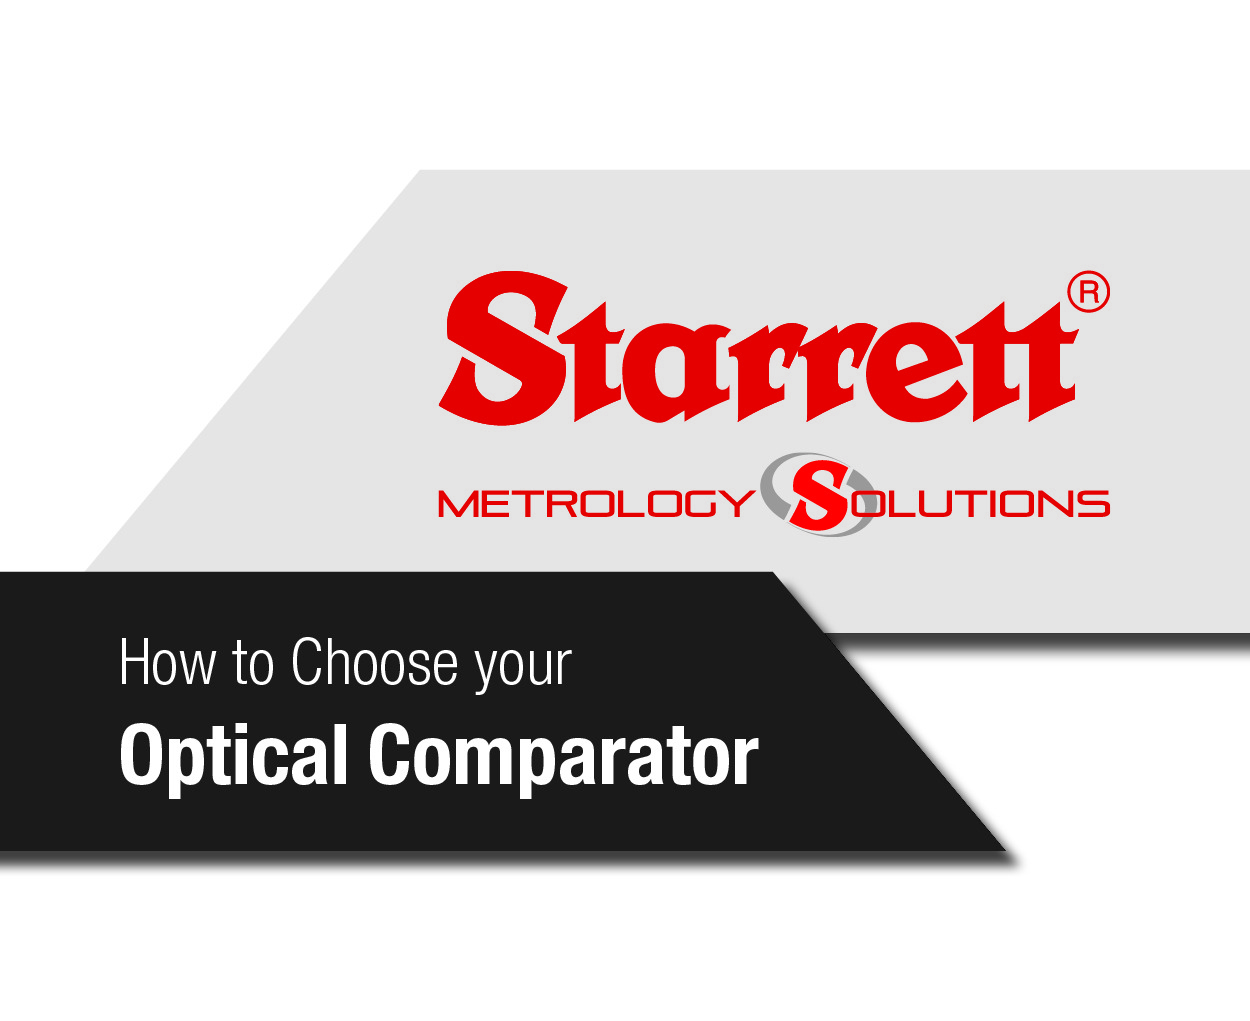 1322, 1322, how to choose you optical comparator, how-to-choose-you-optical-comparator.jpg, 938145, https://starrett-metrology.co.uk/wp-content/uploads/2020/05/how-to-choose-you-optical-comparator.jpg, https://starrett-metrology.co.uk/how-to-choose-your-optical-comparator/how-to-choose-you-optical-comparator/, How to Choose Starrett Optical, 5, , , how-to-choose-you-optical-comparator, inherit, 1321, 2020-05-25 14:07:37, 2020-05-25 14:09:18, 0, image/jpeg, image, jpeg, https://starrett-metrology.co.uk/wp-includes/images/media/default.png, 1250, 1021, Array